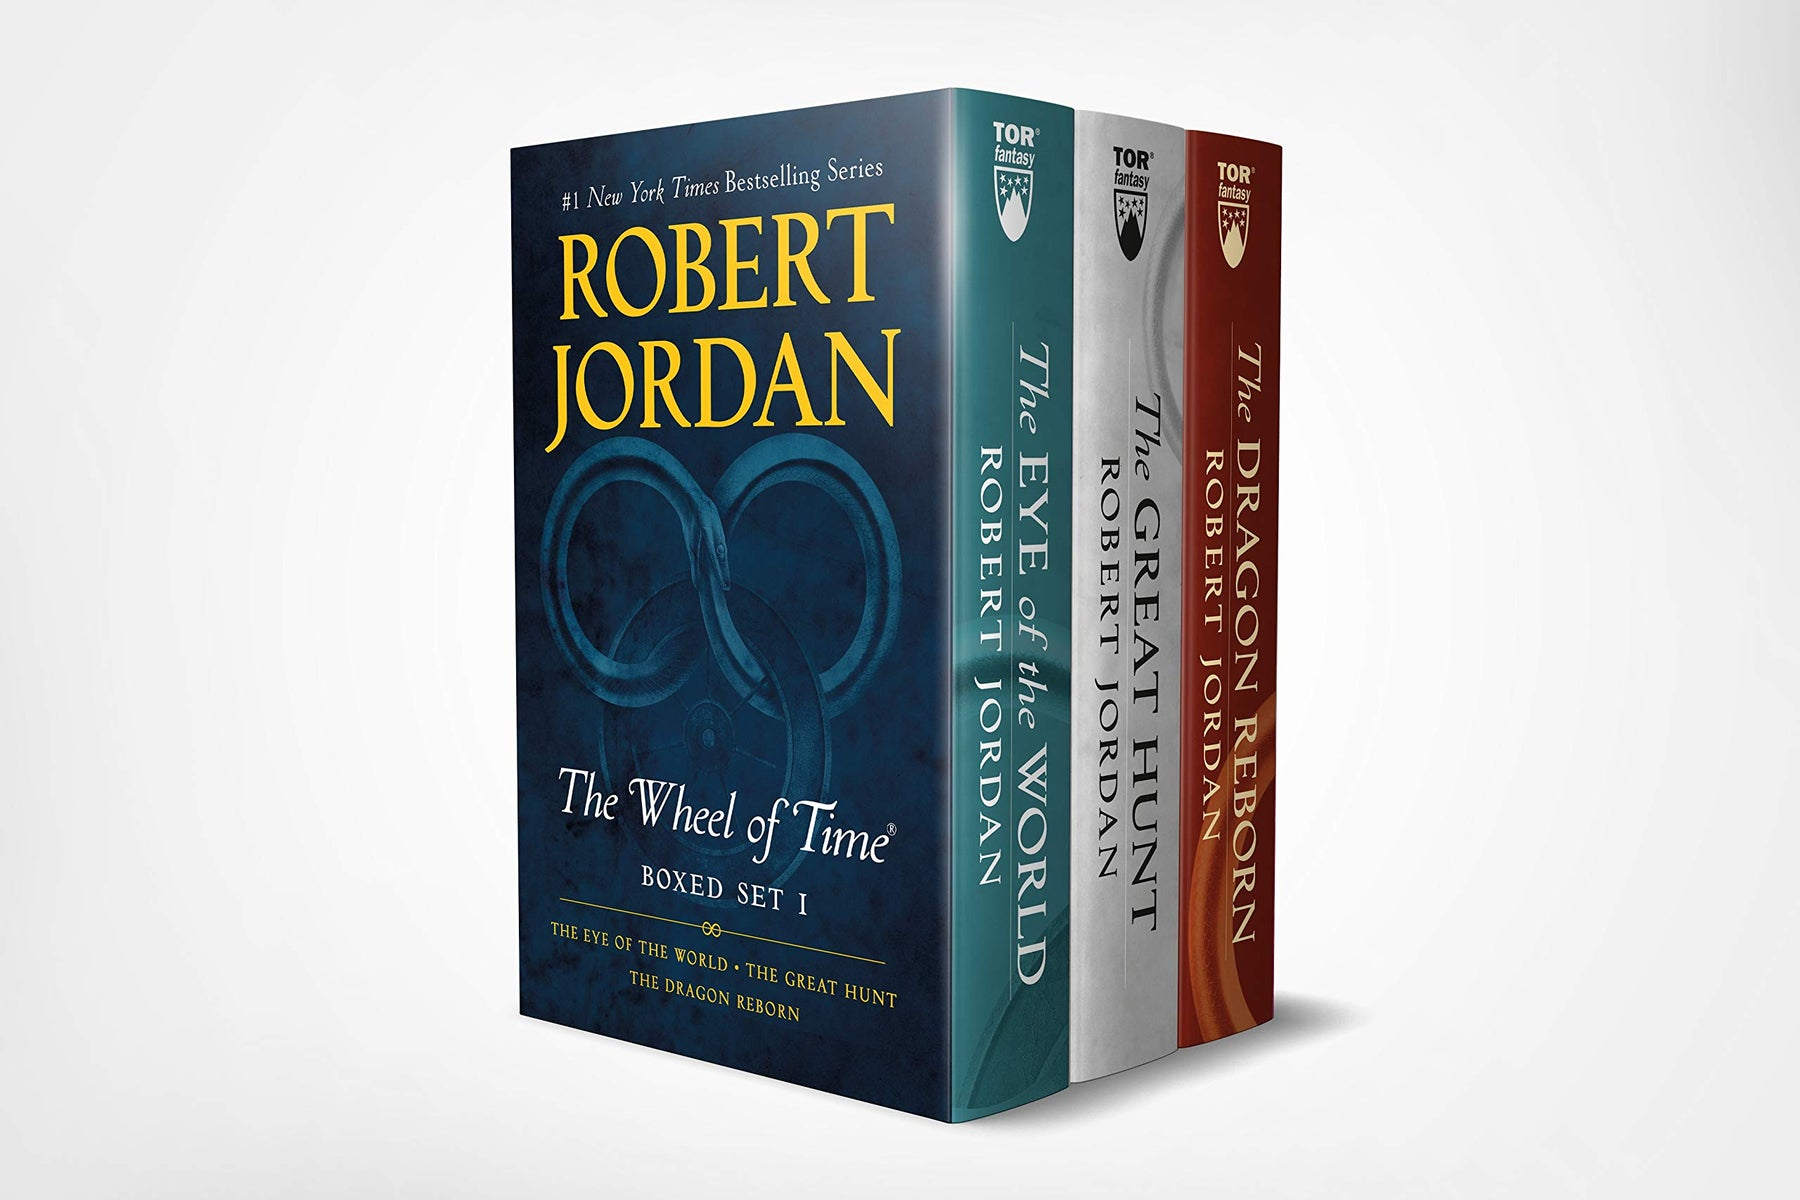 Wheel of Time Premium Boxed Set I: Books 1-3 (The Eye of the World, The Great Hunt, The Dragon Reborn) - Troogears